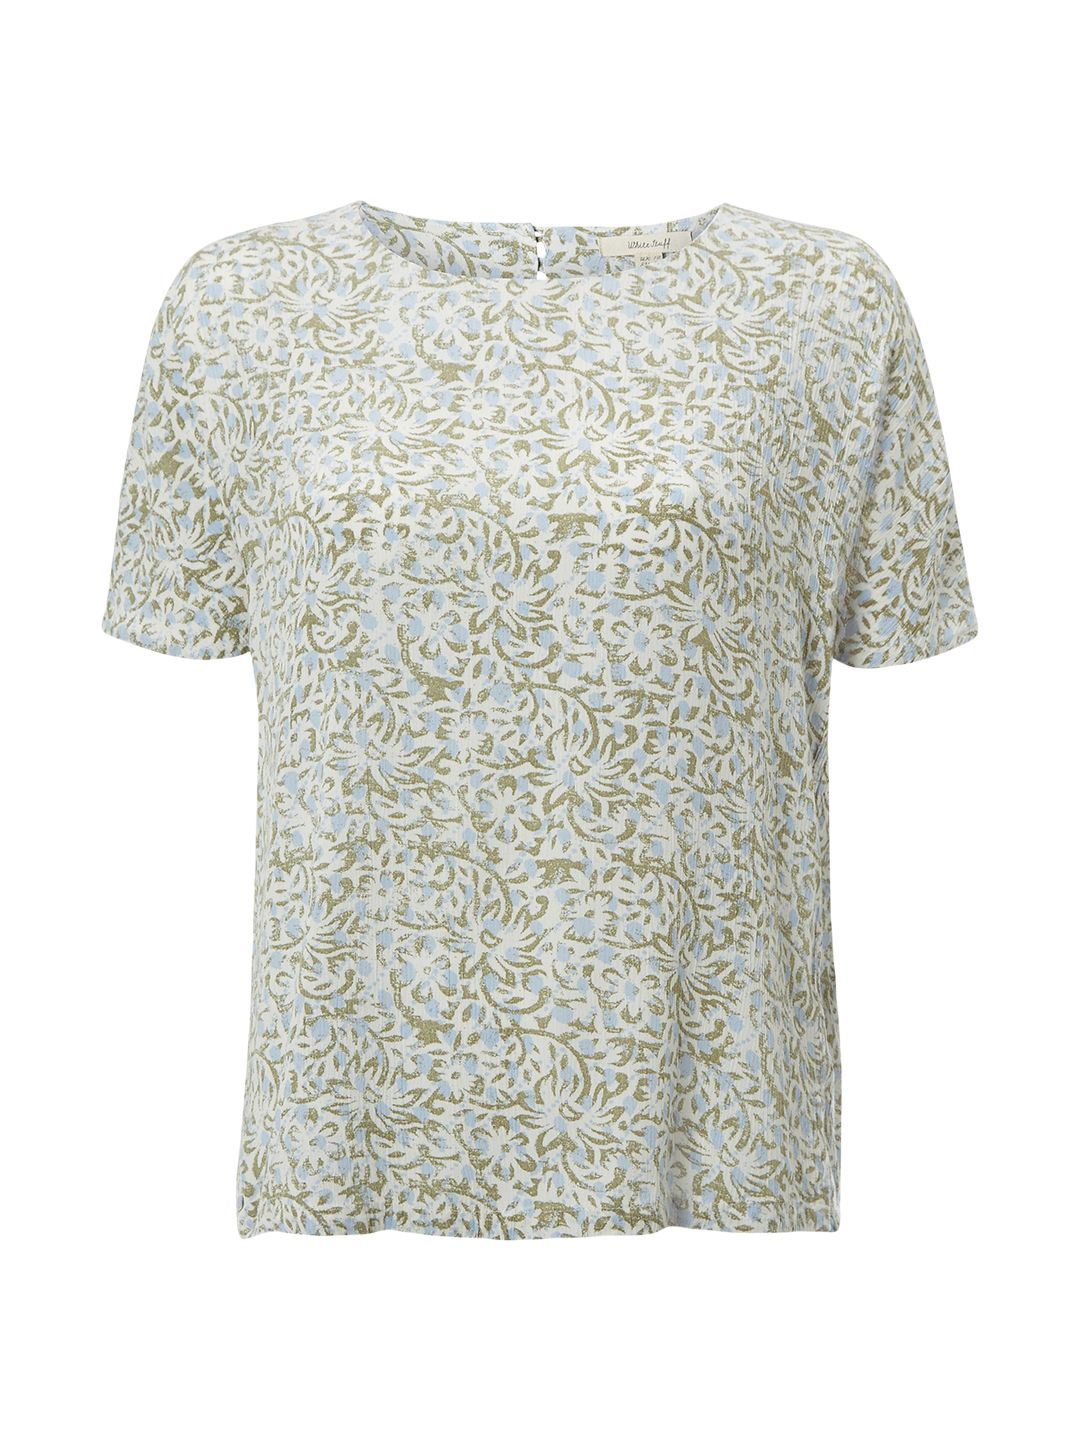 White Stuff Karala Graphic Top, Green